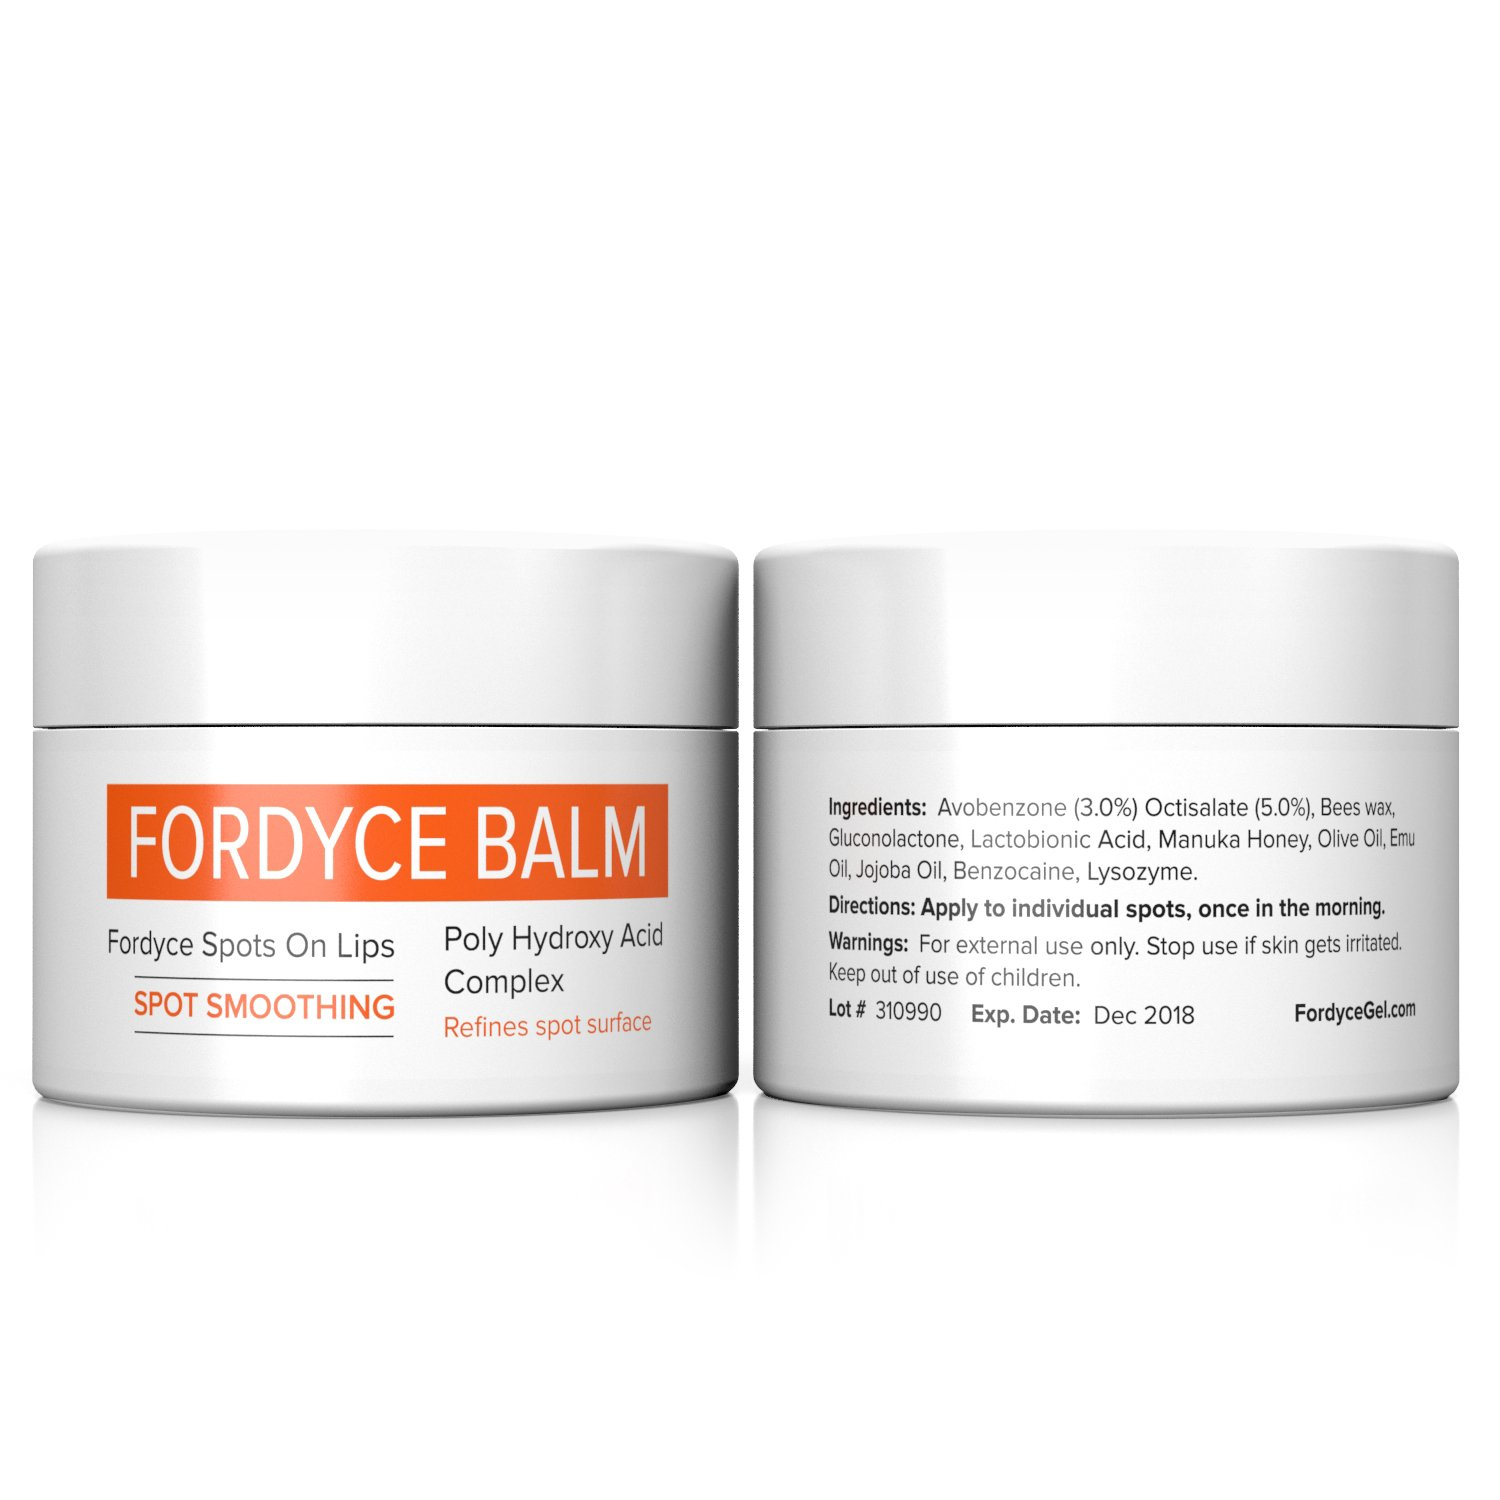 Fordyce Spots Removal Cream FOR LIPS  The first clinically proven fordyce  spot home treatment for men